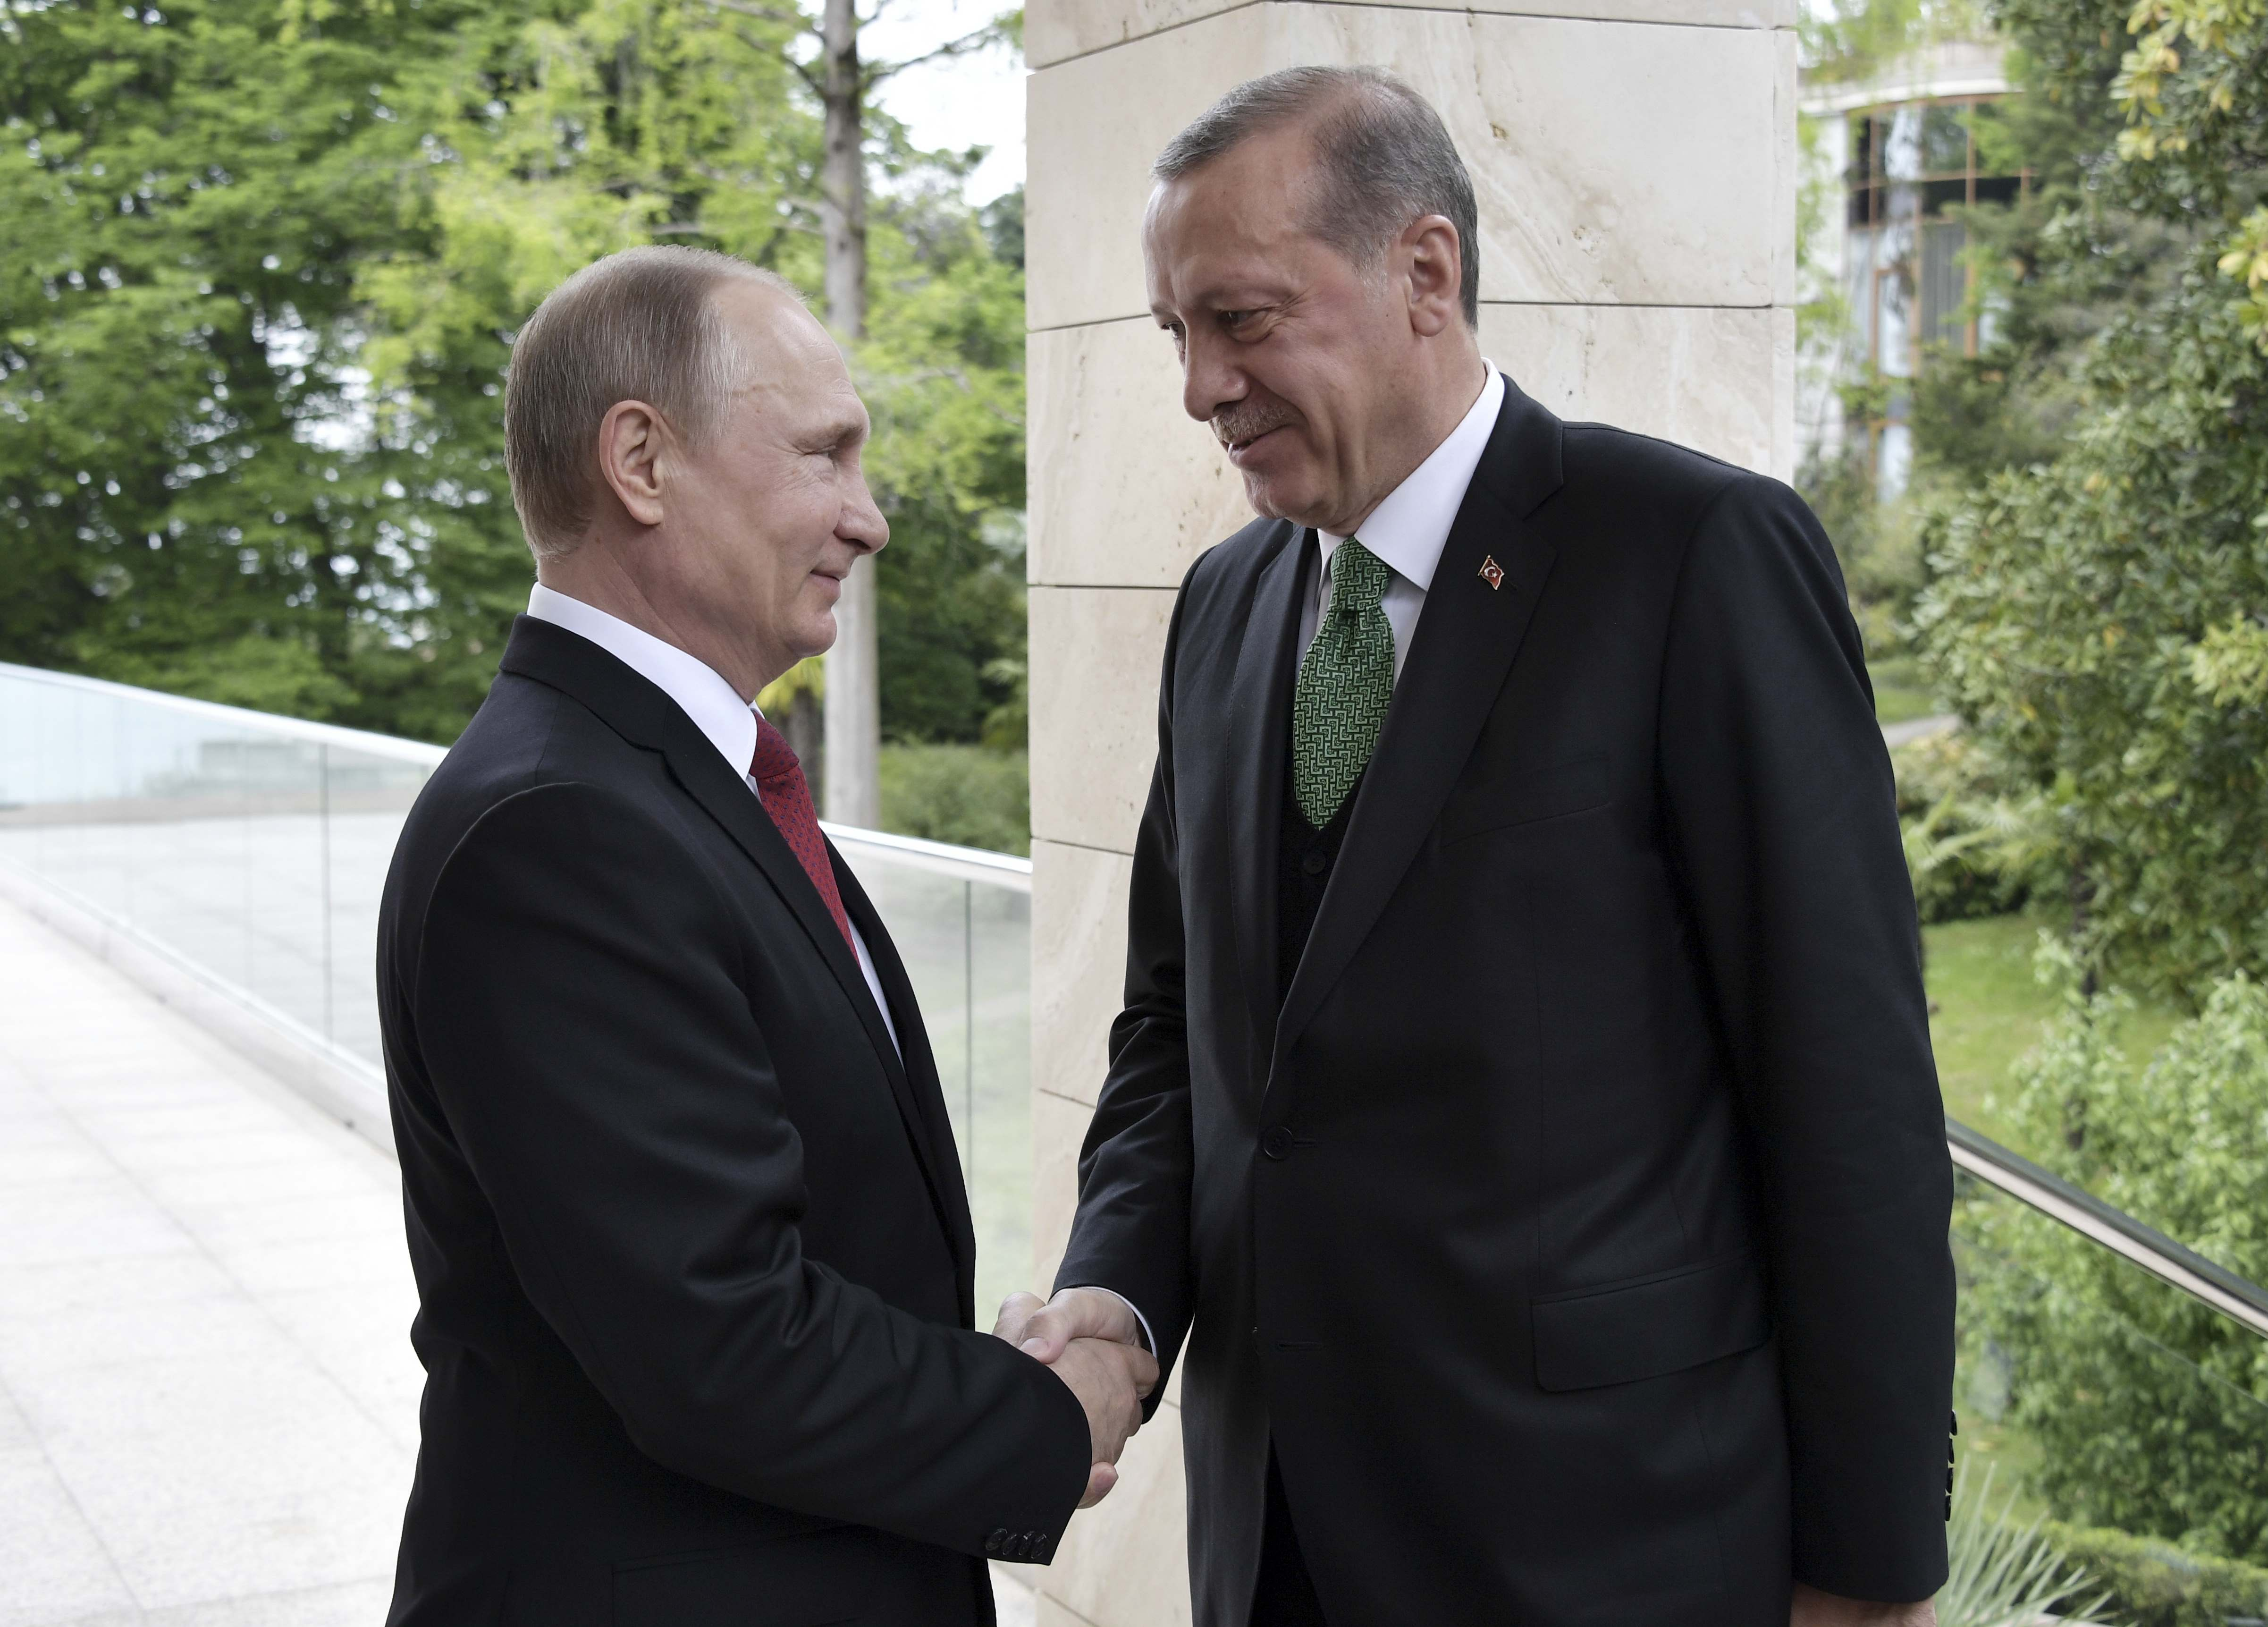 Russian President Vladimir Putin (L) shakes hands with his Turkish counterpart Tayyip Erdogan during a meeting in Sochi, Russia on May 3, 2017. (Sputnik/Alexei Nikolsky/Kremlin via REUTERS)